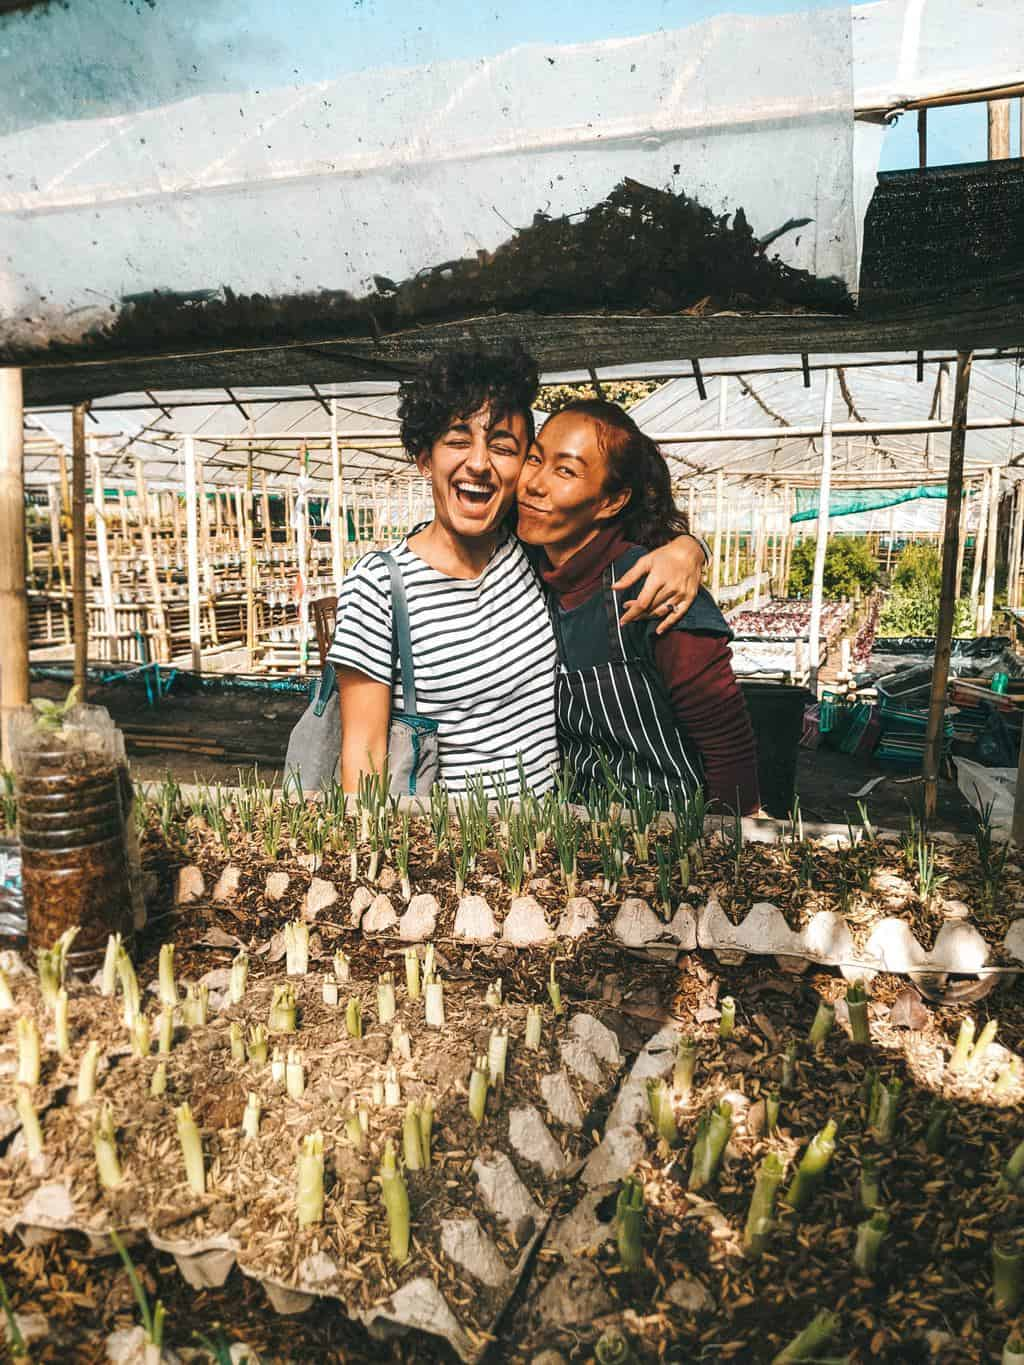 two happy woman with their arms around each other in front of some young plants